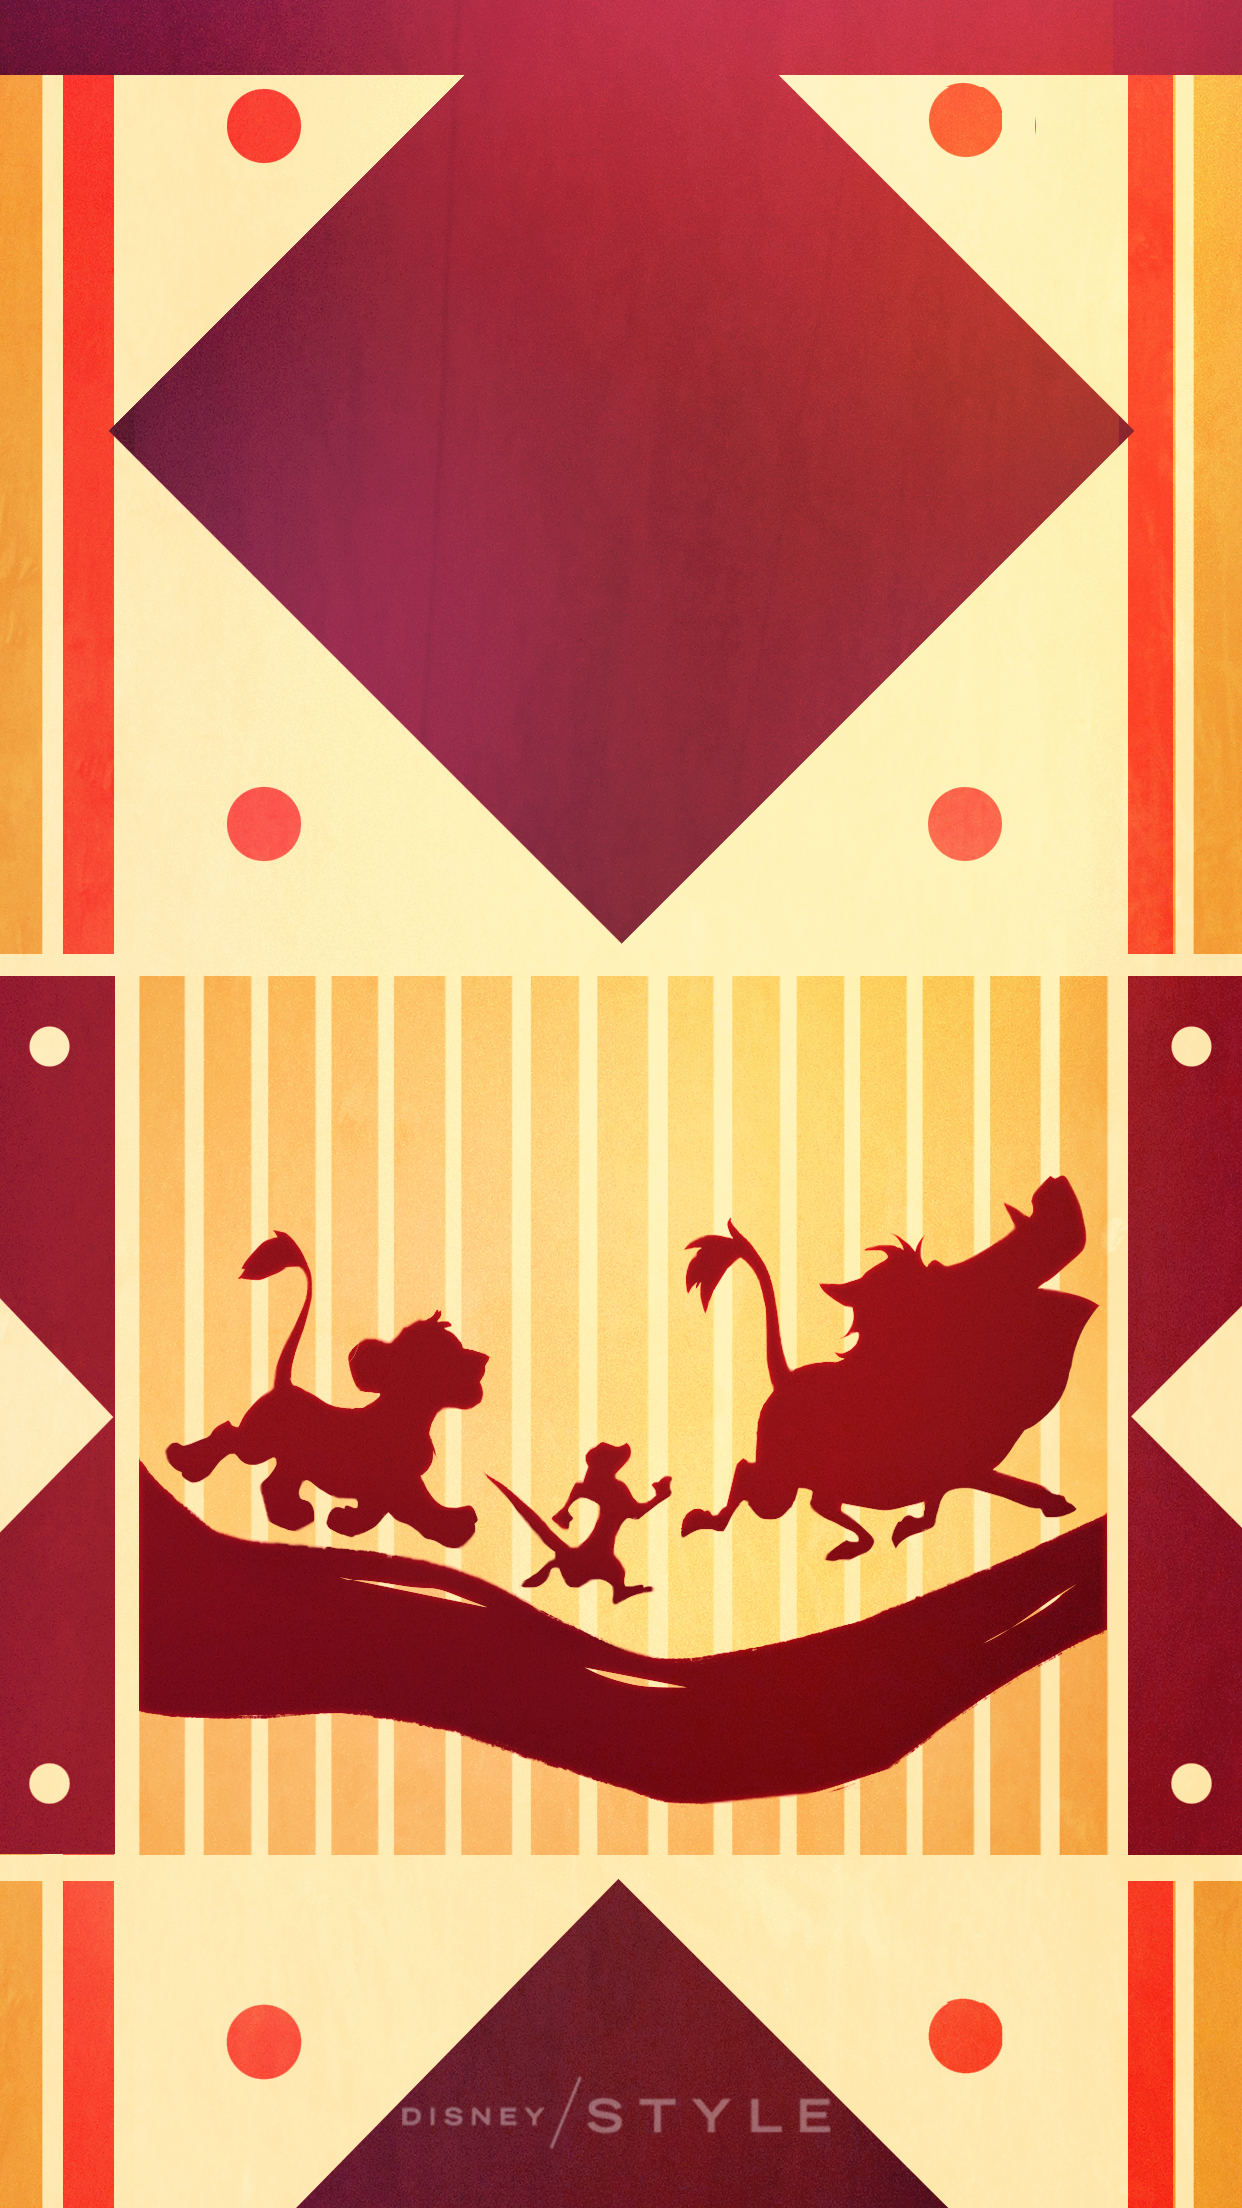 Disney Images The Lion King Phone Wallpaper Hd Wallpaper And